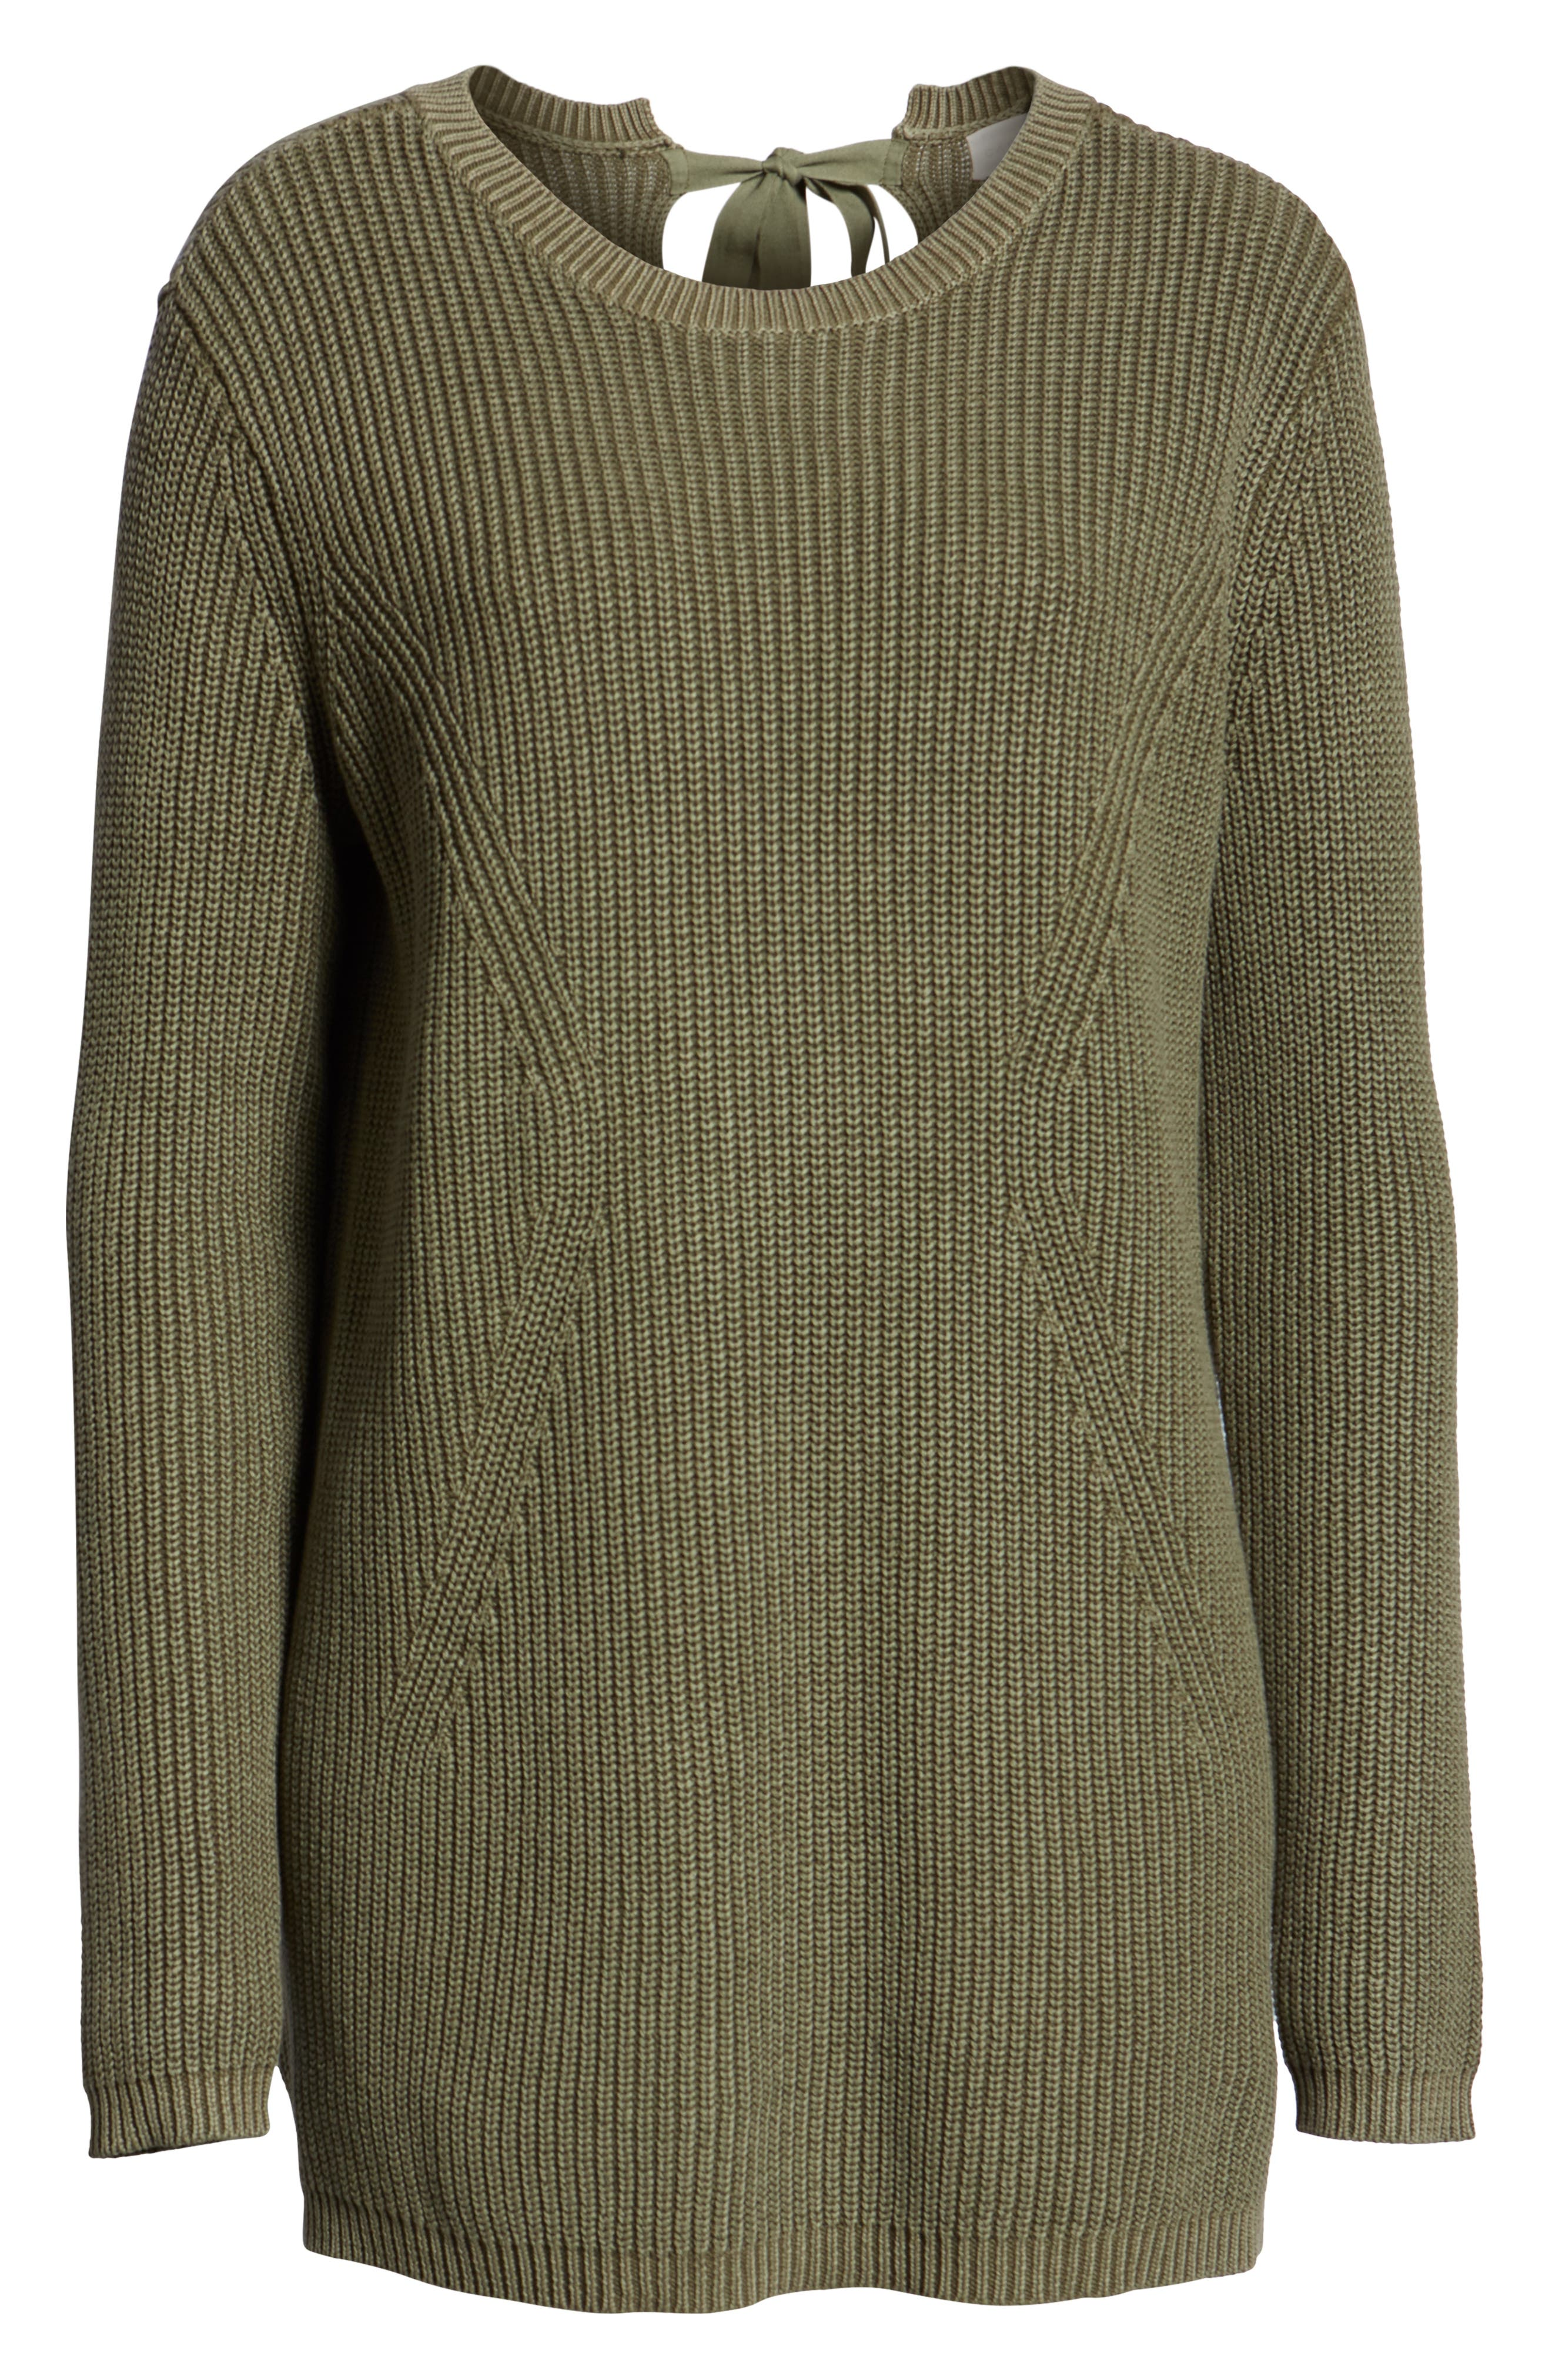 Tie Back Tunic Sweater,                             Alternate thumbnail 6, color,                             301